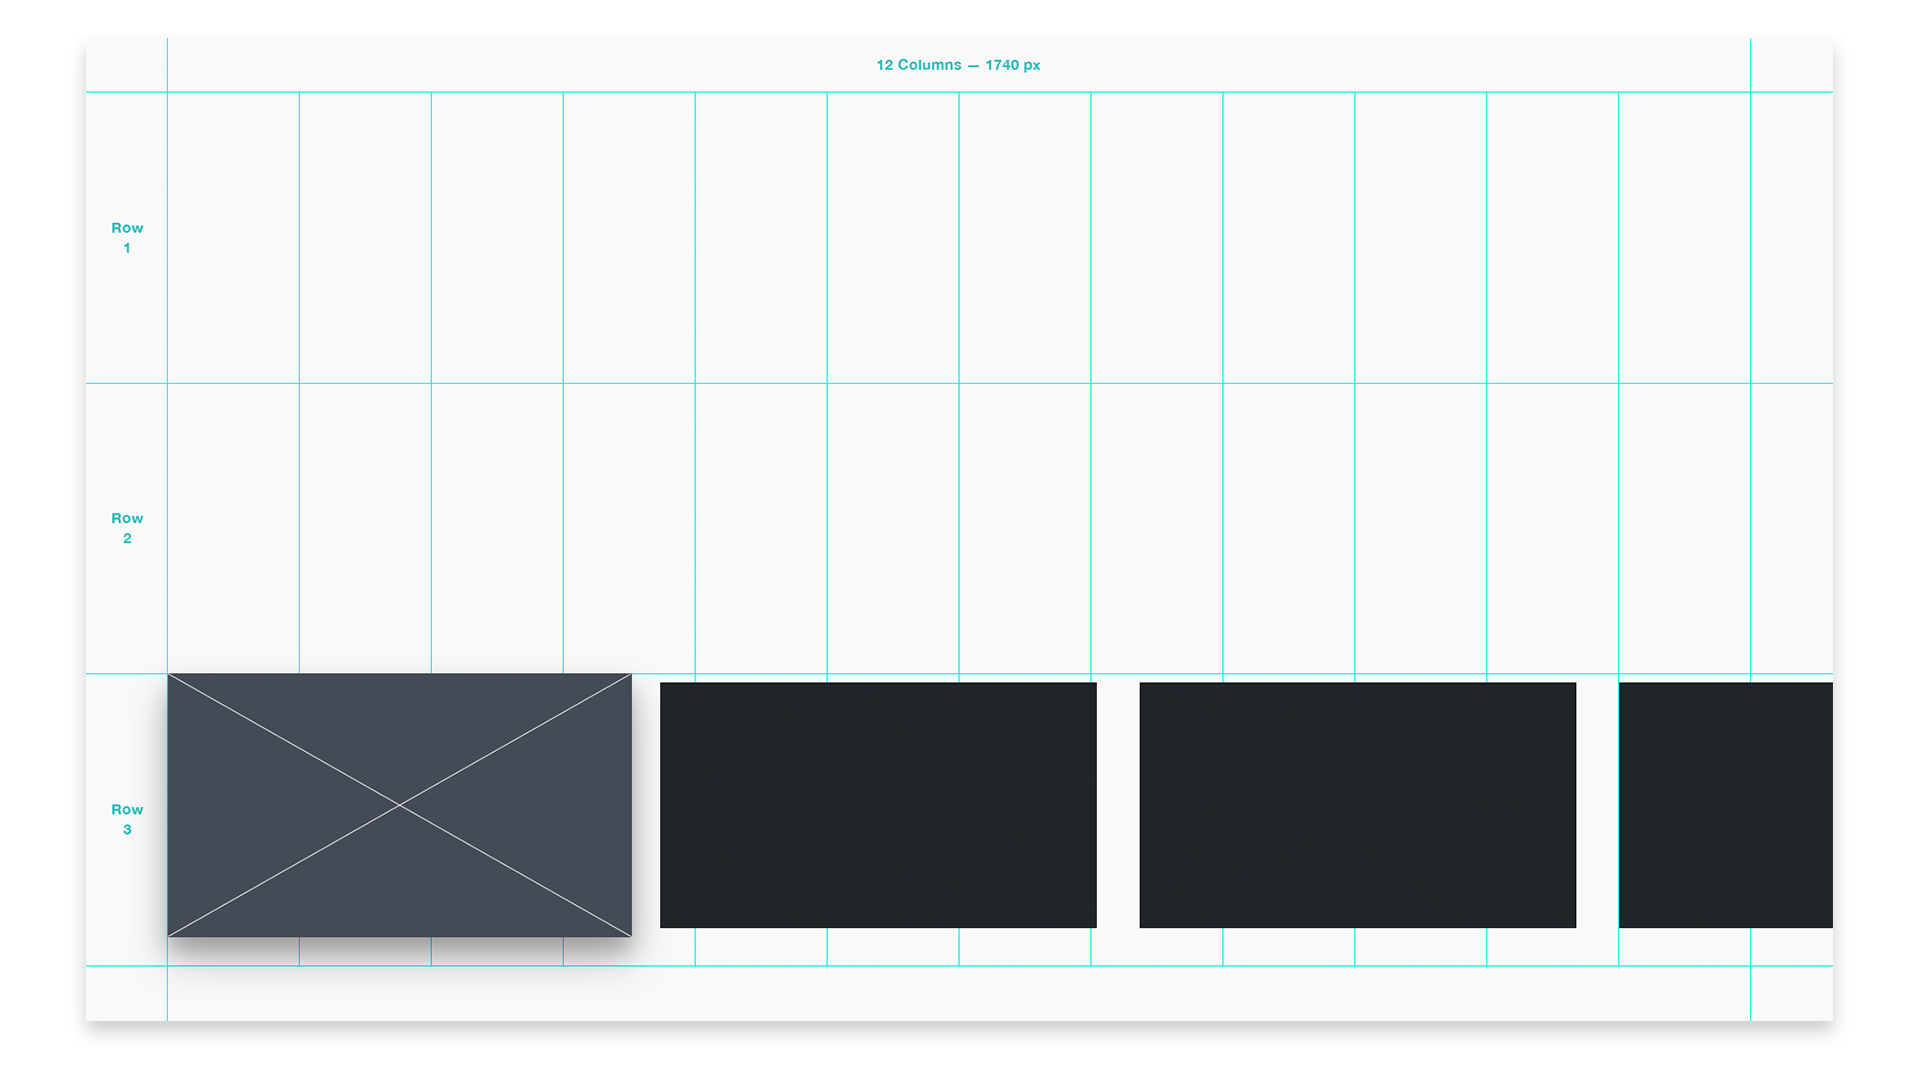 Designing For Television Part 1 This Also Medium Led Tv Diagram Movement Color Remote Our Prototype Lets Recreate A Typical Ui Layout With One Horizontal Row Of Content Well Add Cursor State To The First Item